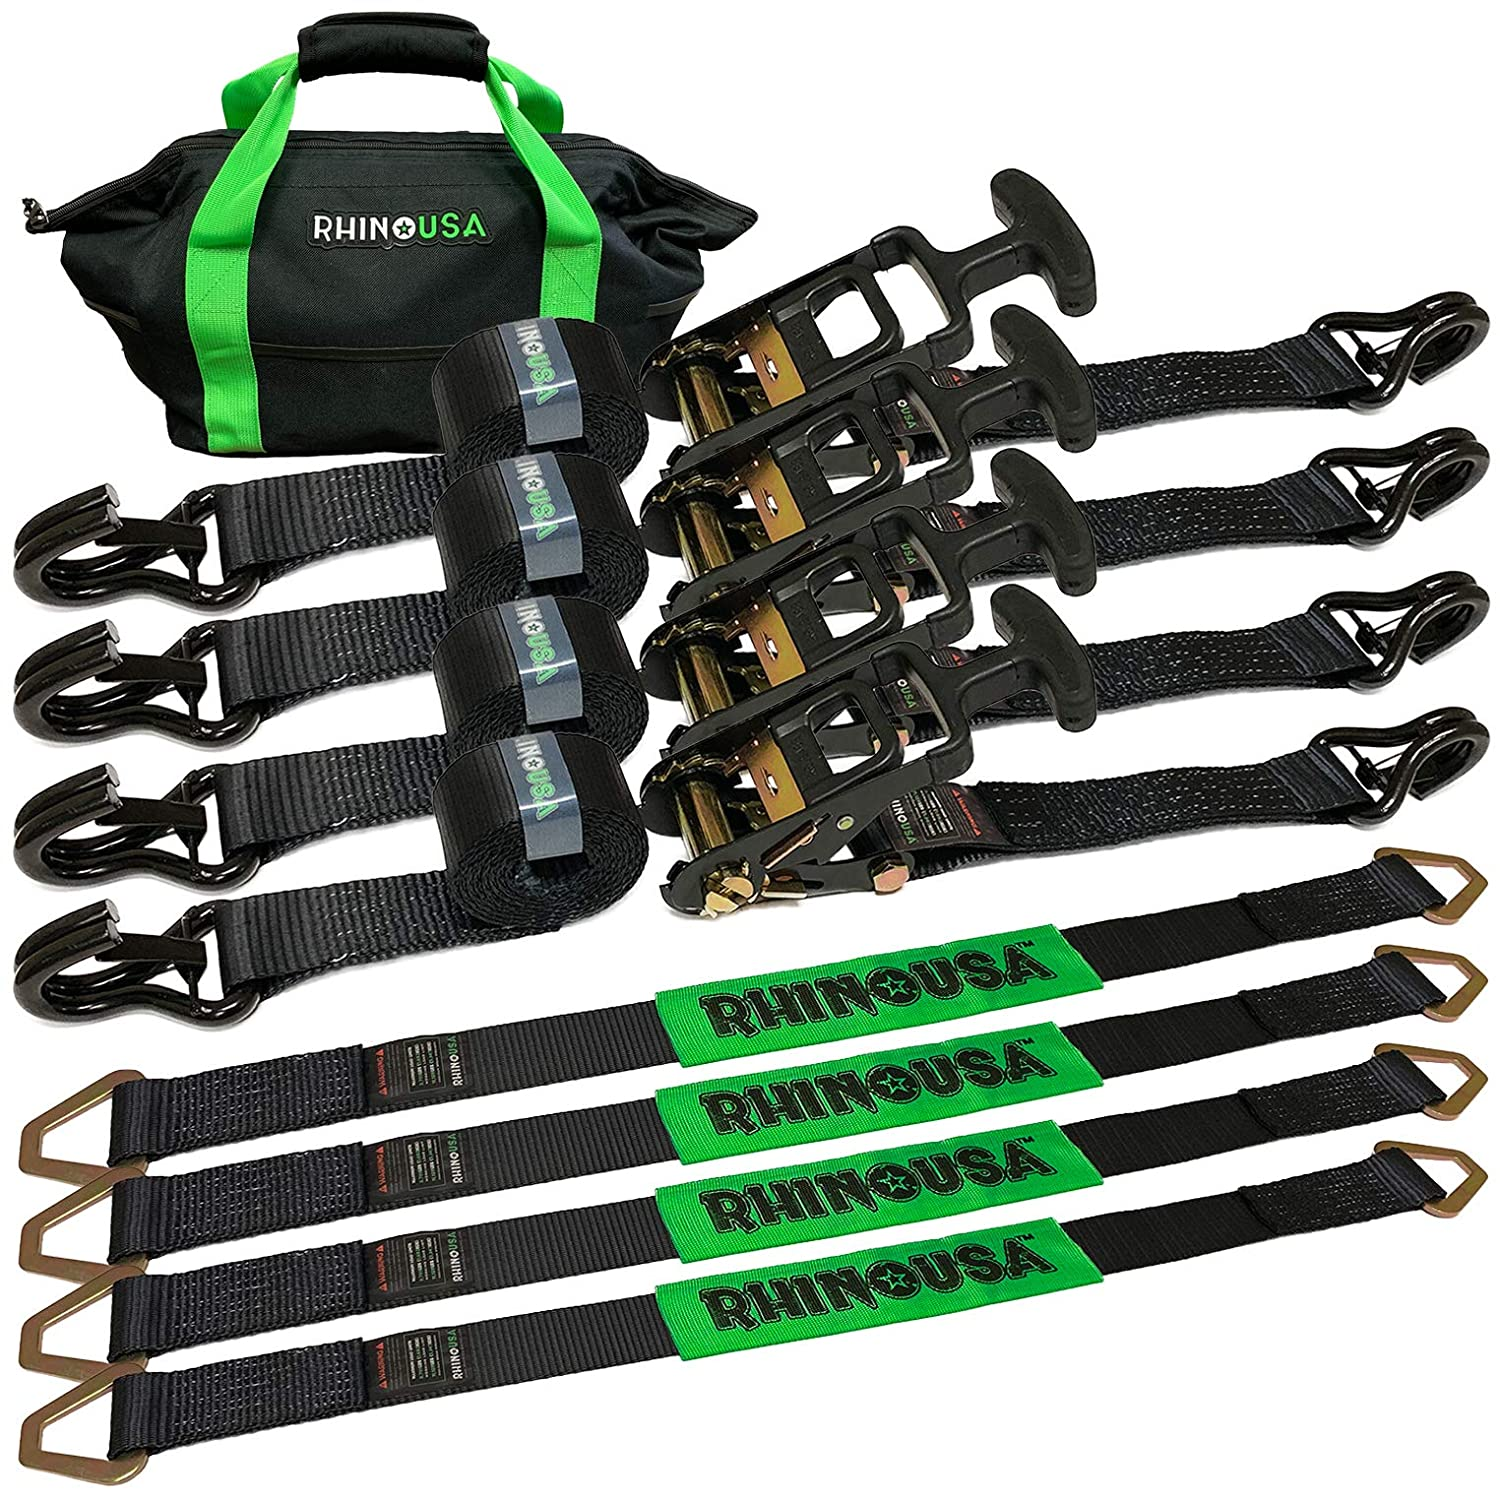 """Rhino USA Heavy Duty Vehicle Tie Down Kit - 11,128lb Guaranteed Break Strength - Use for Car, Truck, UTV - (4) Premium 2"""" x 8' Ratchet Straps with Padded T-Handles + (4) Axle Strap Tie Downs"""